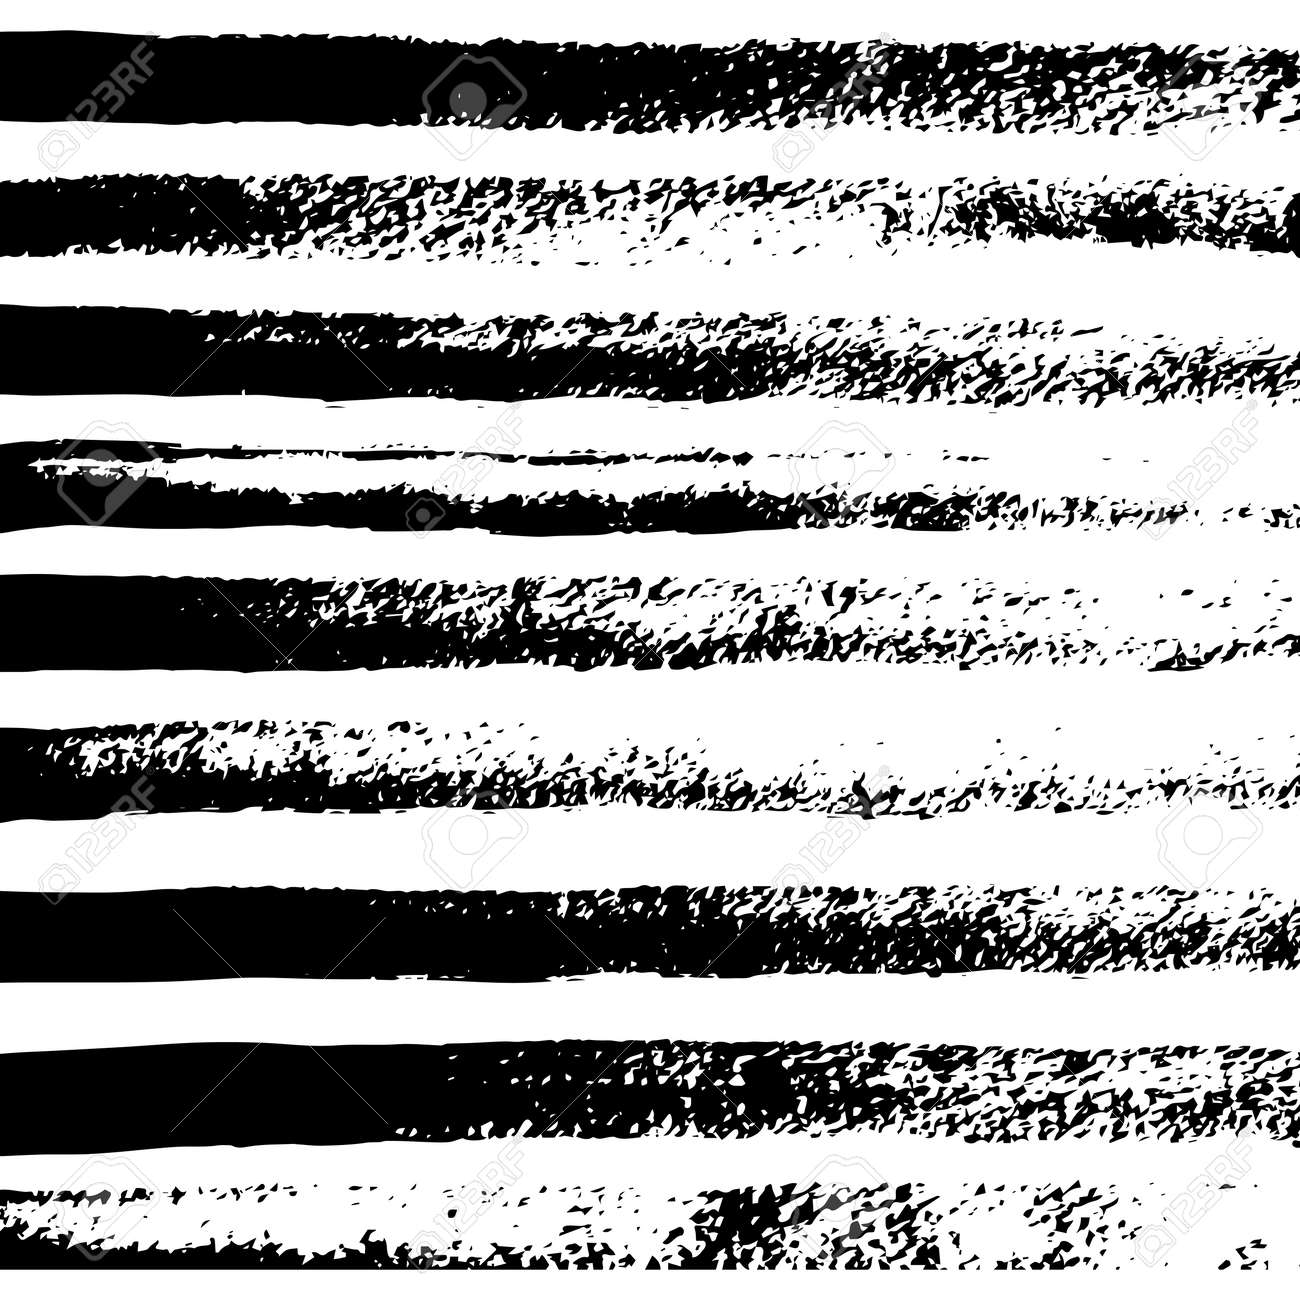 Tile Pattern With Black And White Stripes Background Royalty Free Cliparts,  Vectors, And Stock Illustration. Image 56101534.